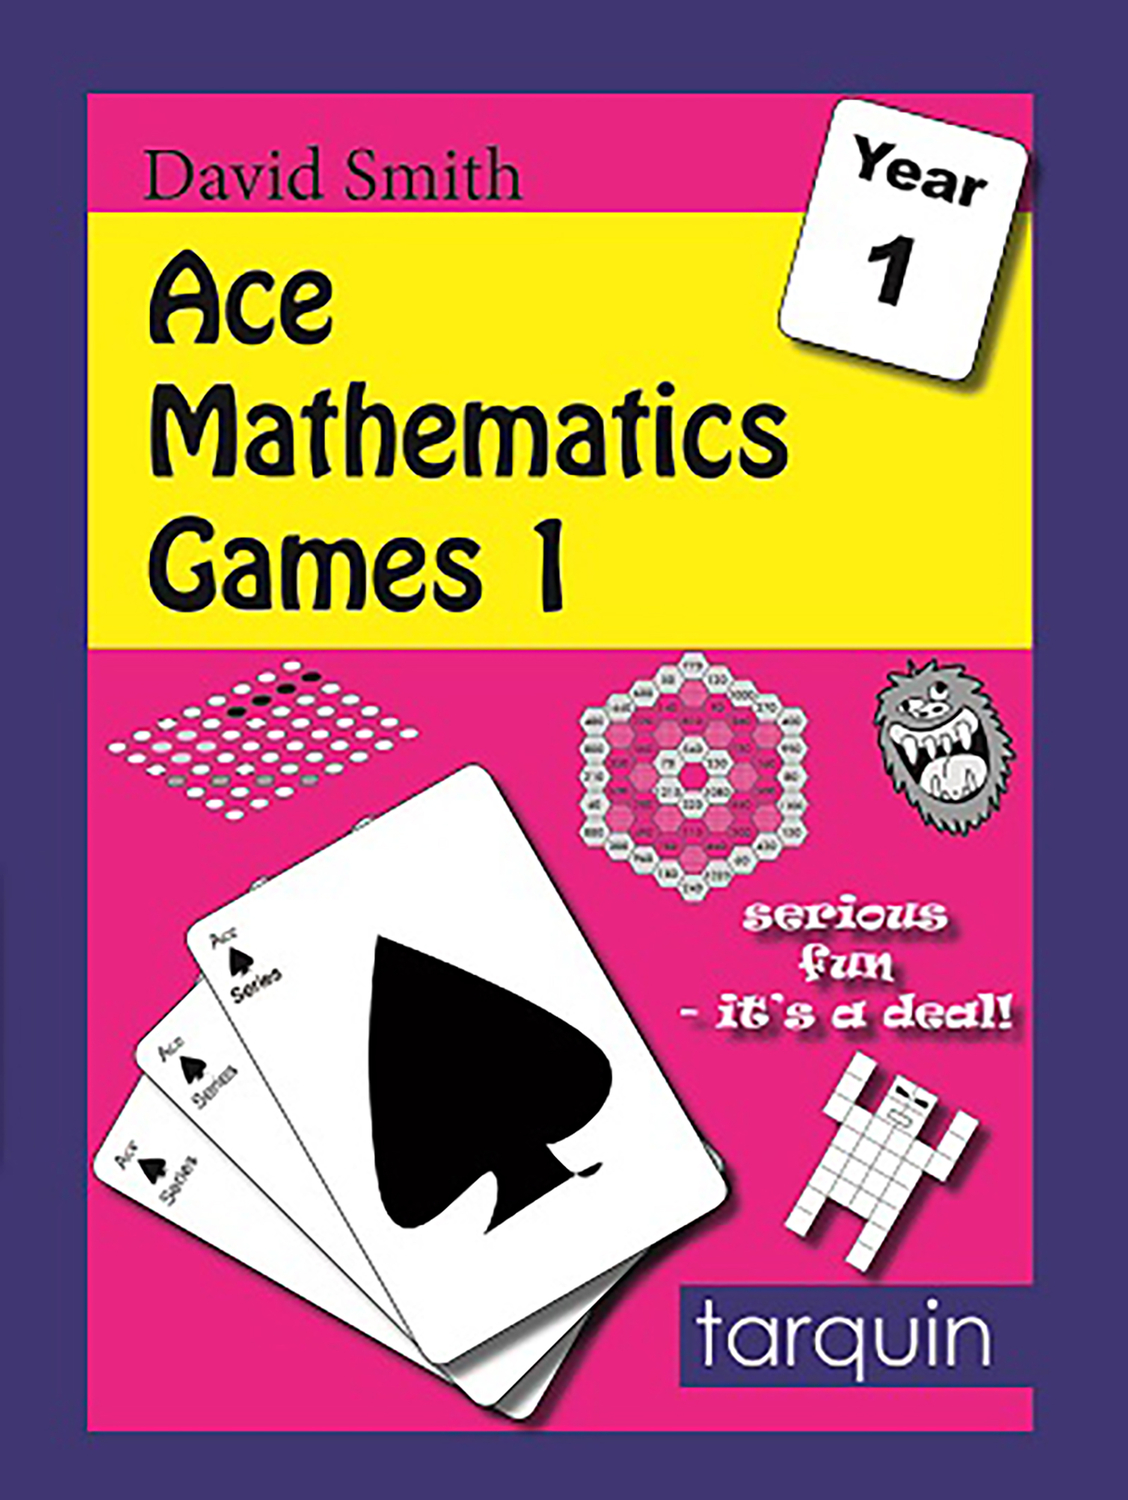 Ace Mathematics Games 1